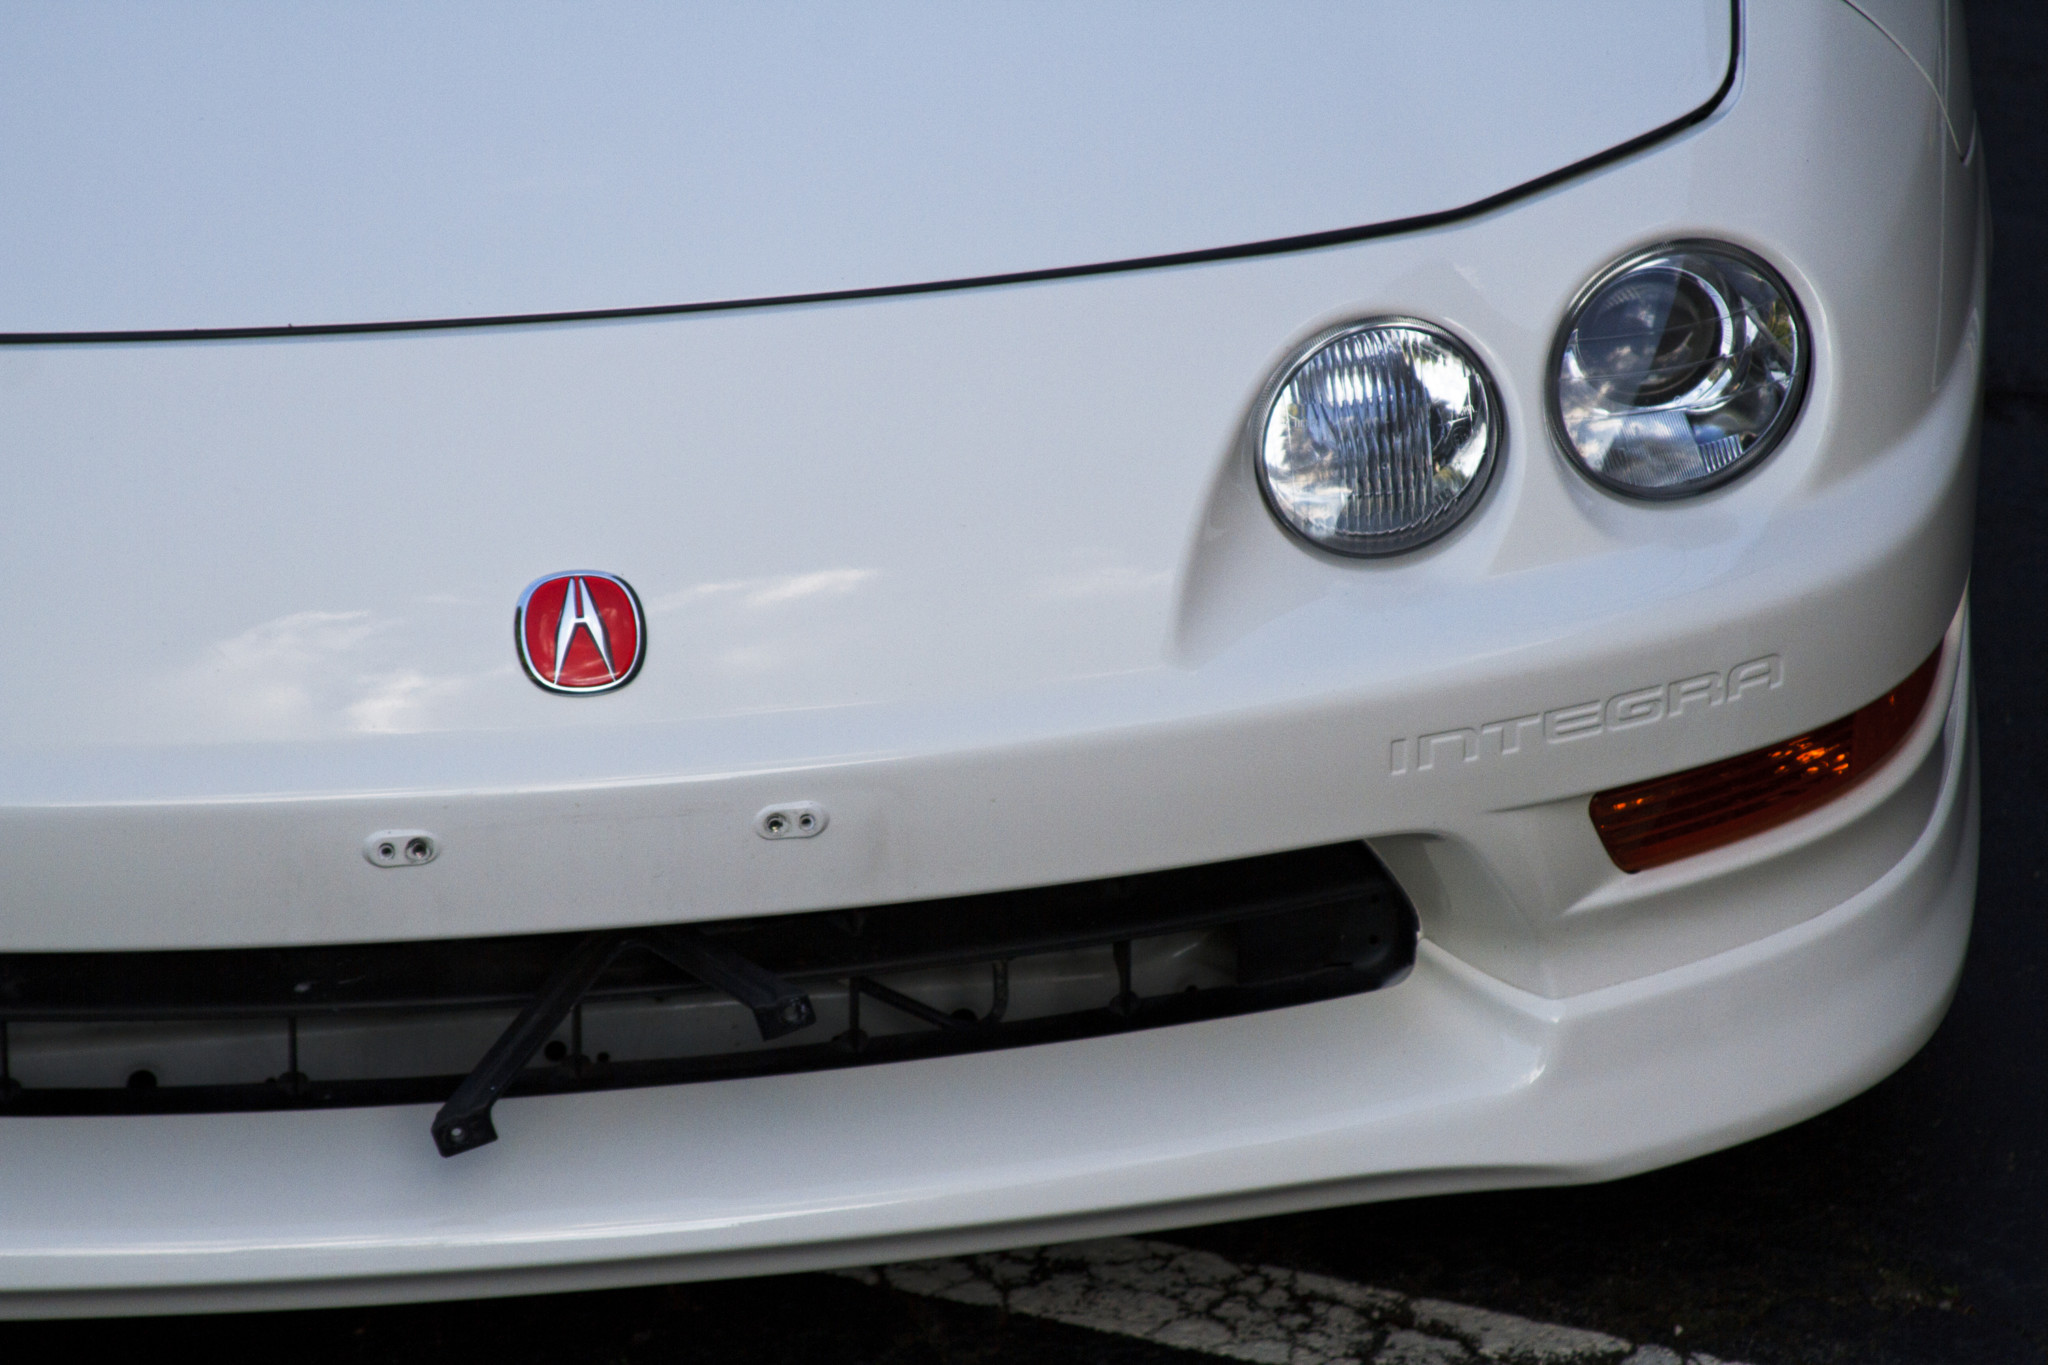 1998 Acura Integra Type R front grille